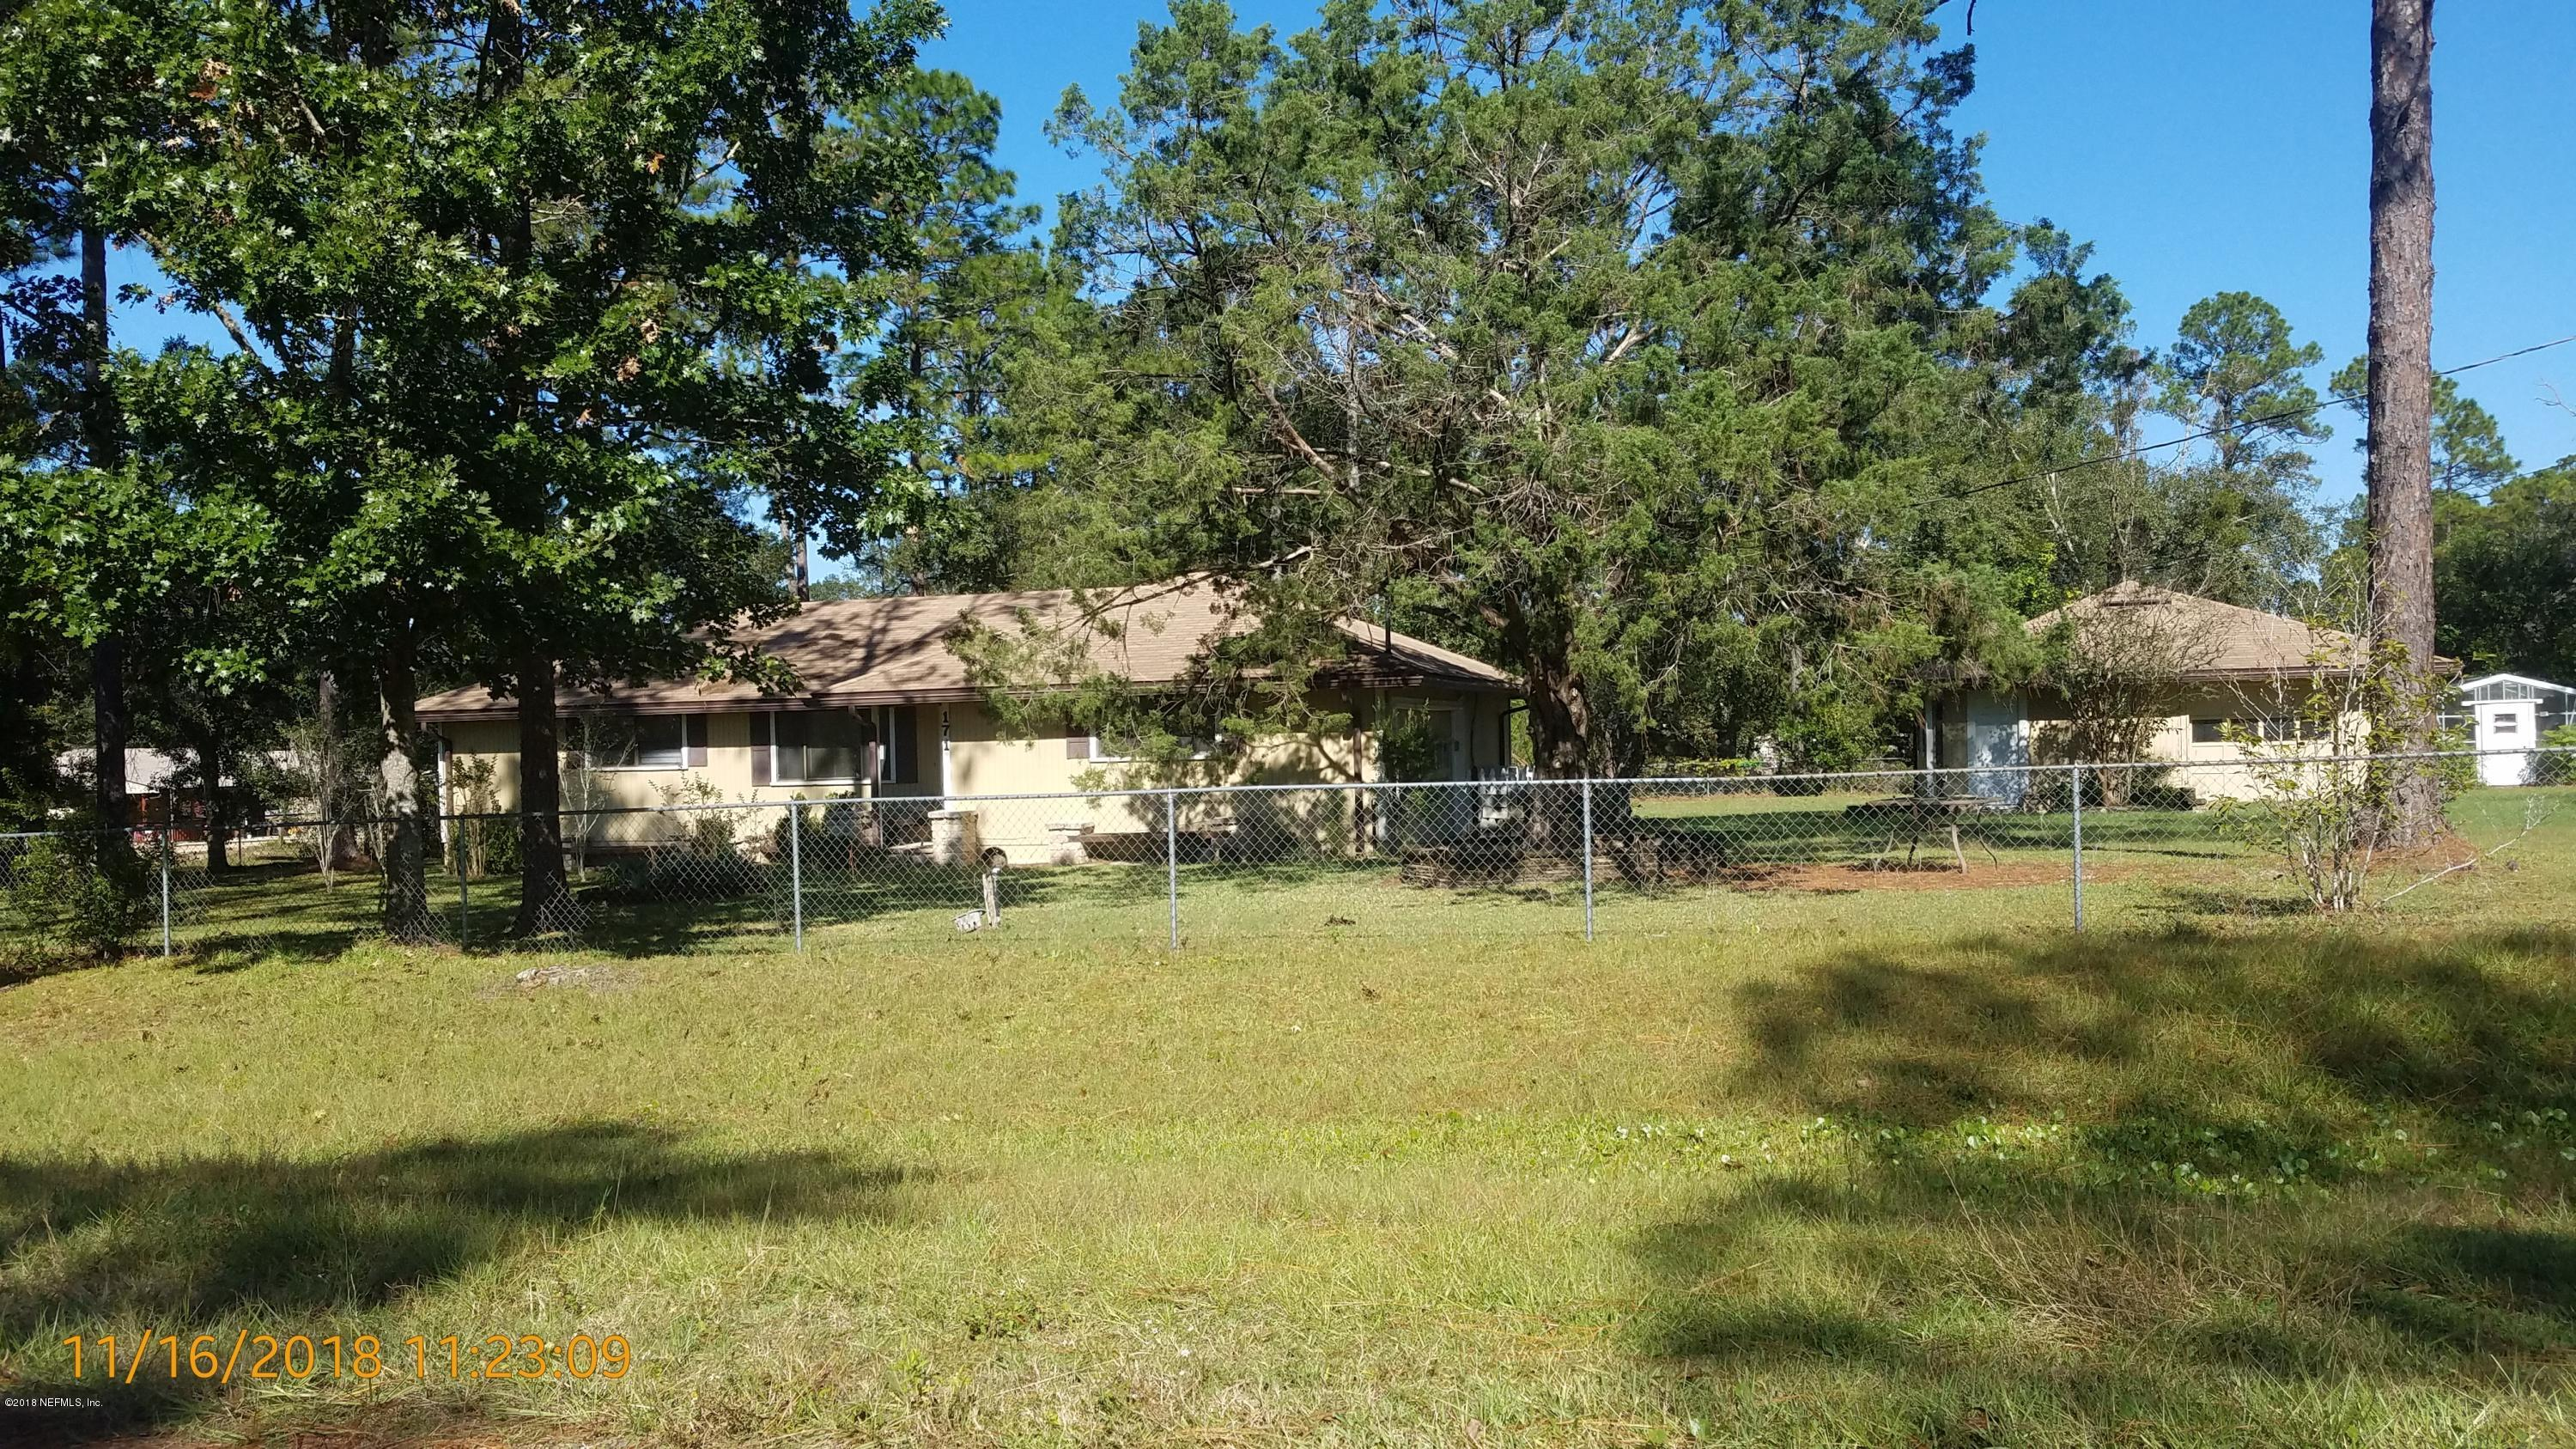 171 ORCHID, MIDDLEBURG, FLORIDA 32068, 2 Bedrooms Bedrooms, ,1 BathroomBathrooms,Residential - single family,For sale,ORCHID,970589